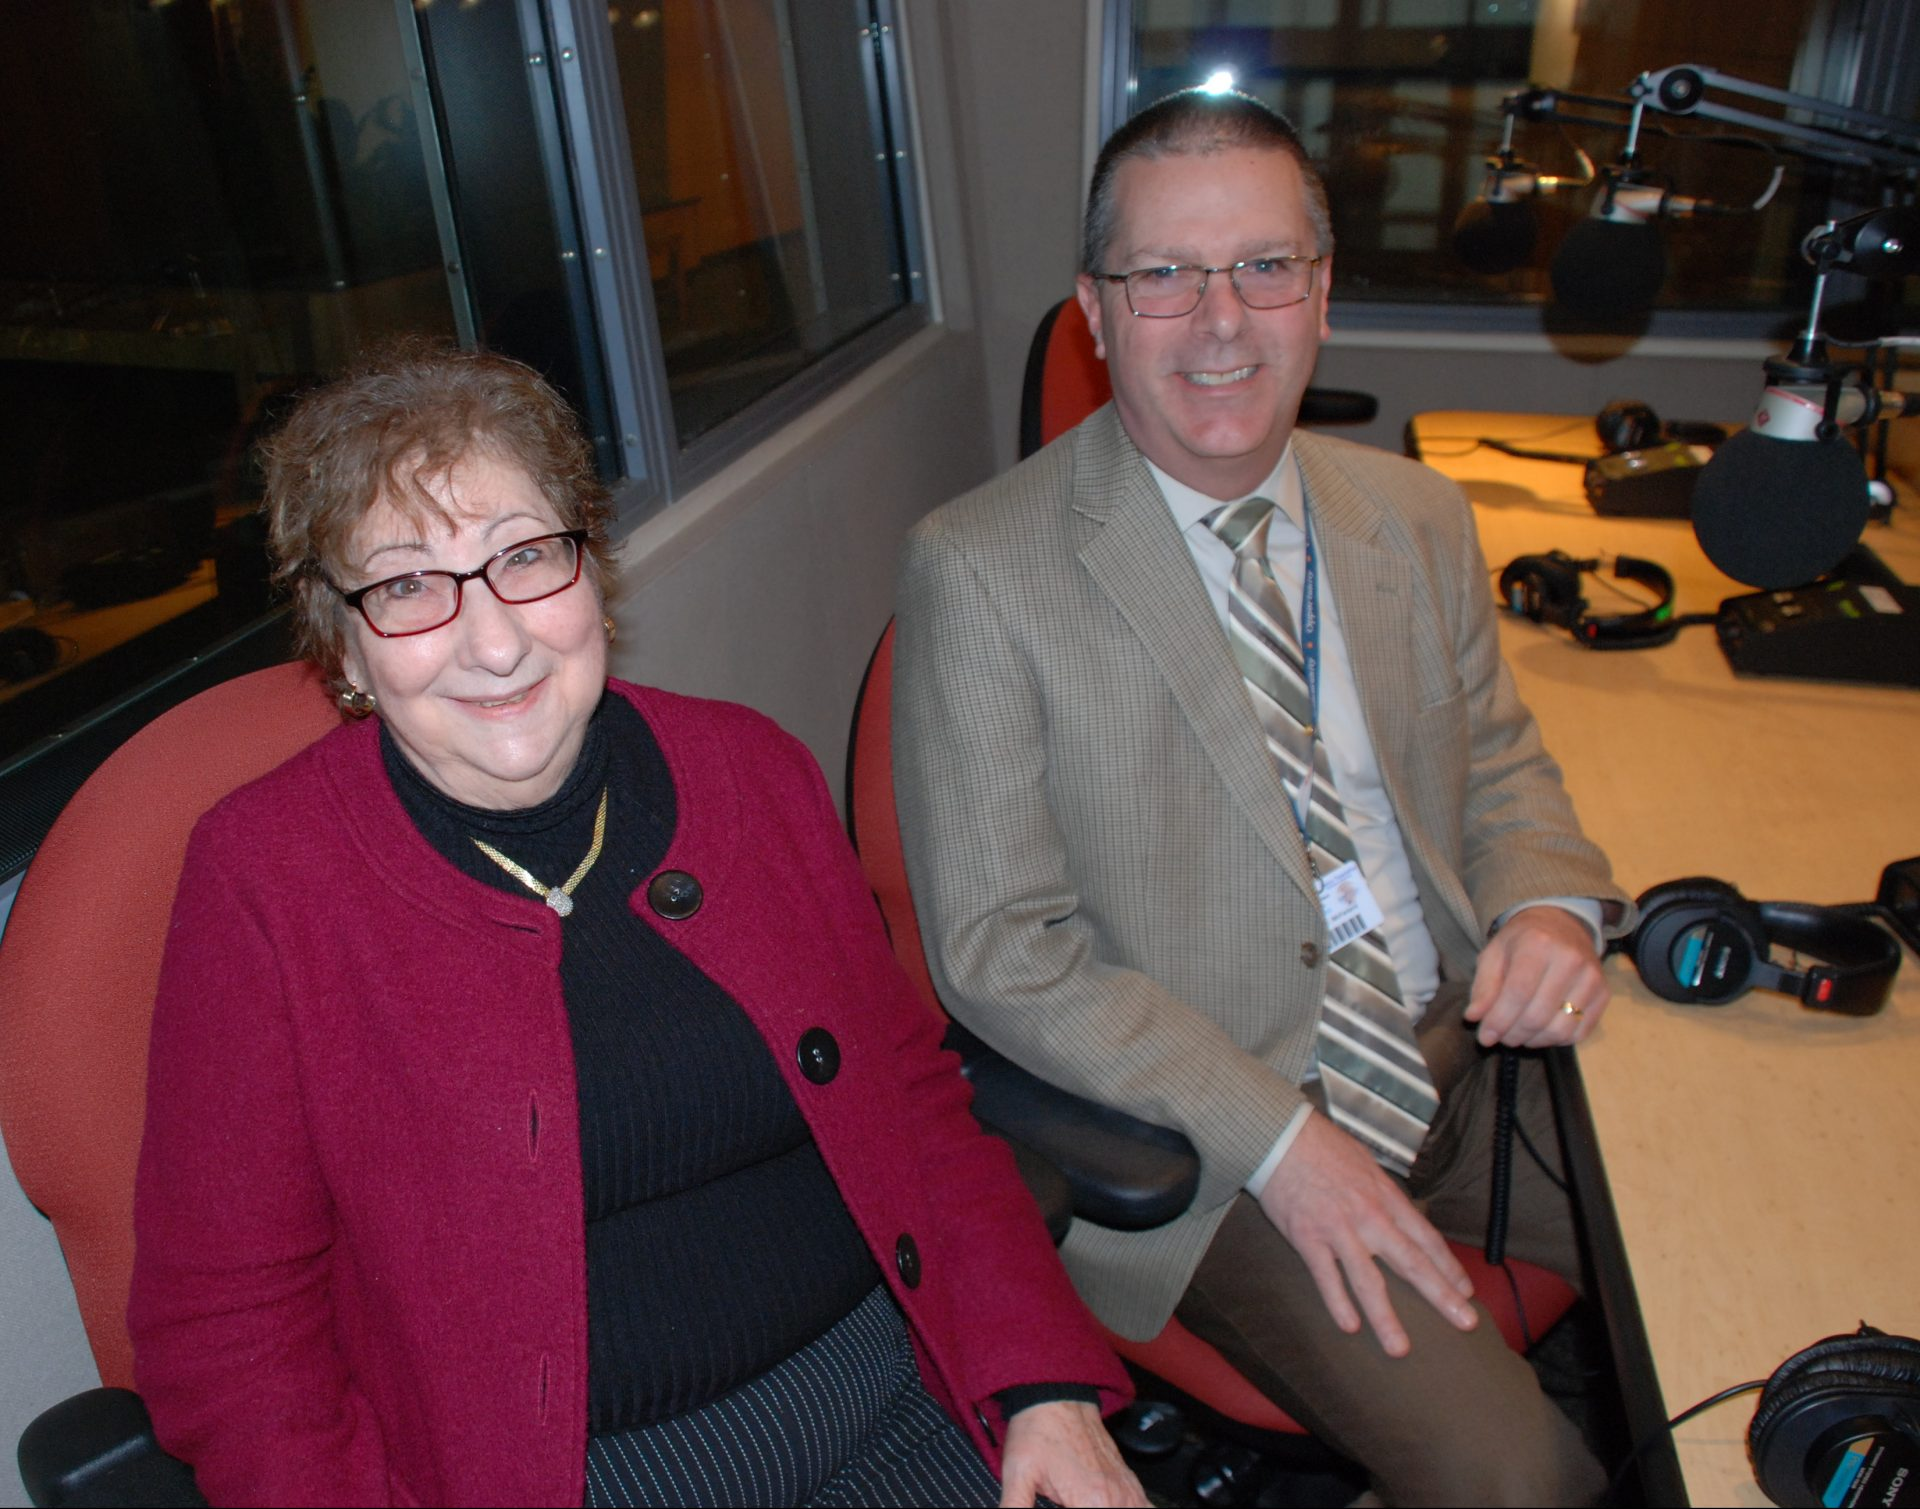 Dr. Gail Karafin and Superintendent Joe McFarland appear on Smart Talk on February 18, 2020.